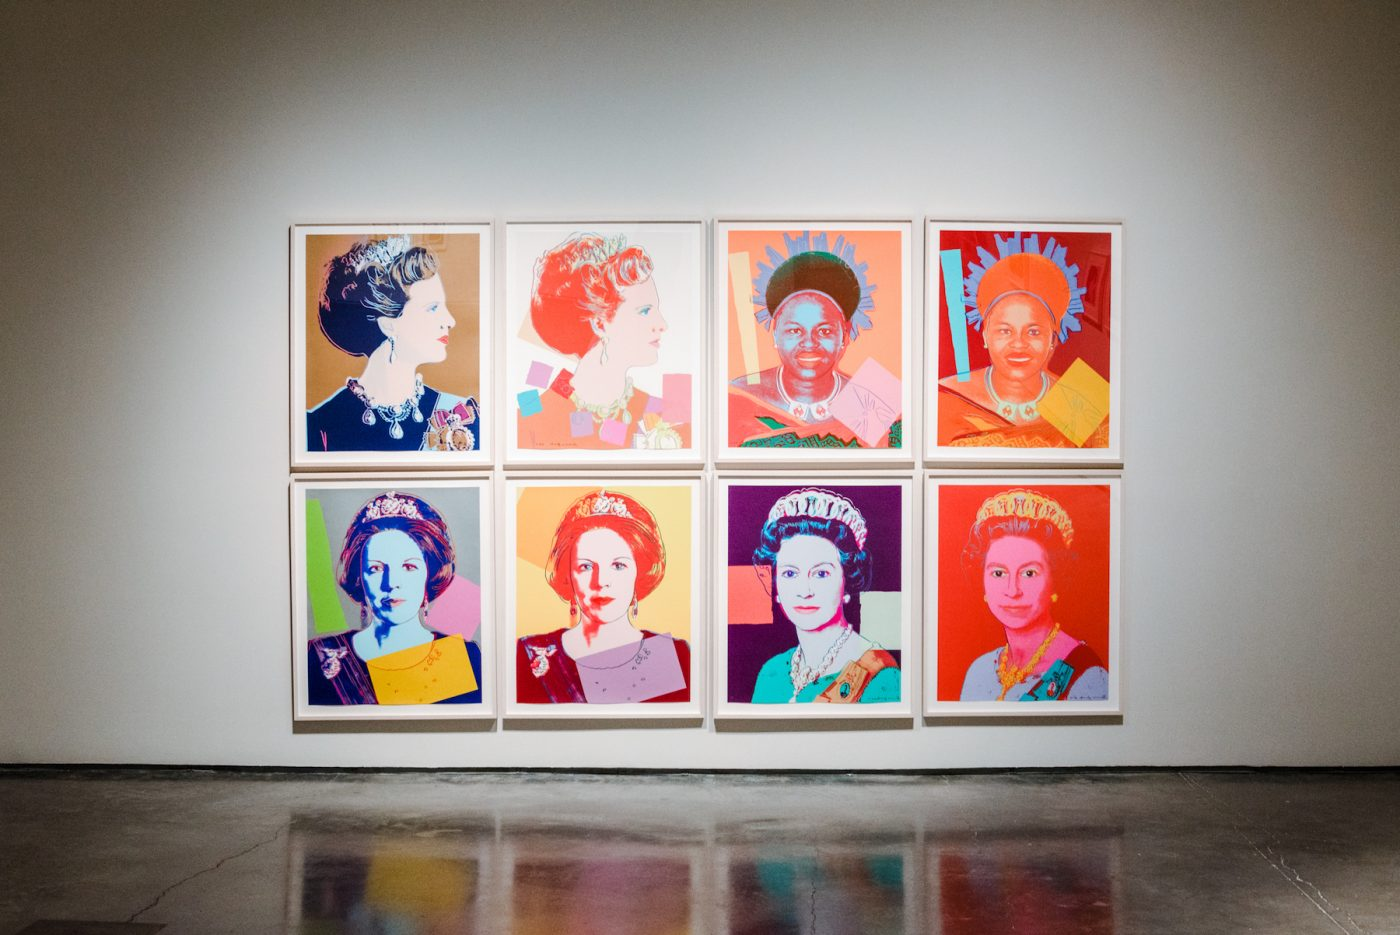 """Andy Warhol's """"Reigning Queens"""" series, 1985, in the 2018 show """"Andy Warhol: Prints from the Collections of Jordan D. Schnitzer and His Family Foundation"""" at the Palm Sprigs Museum of Art."""